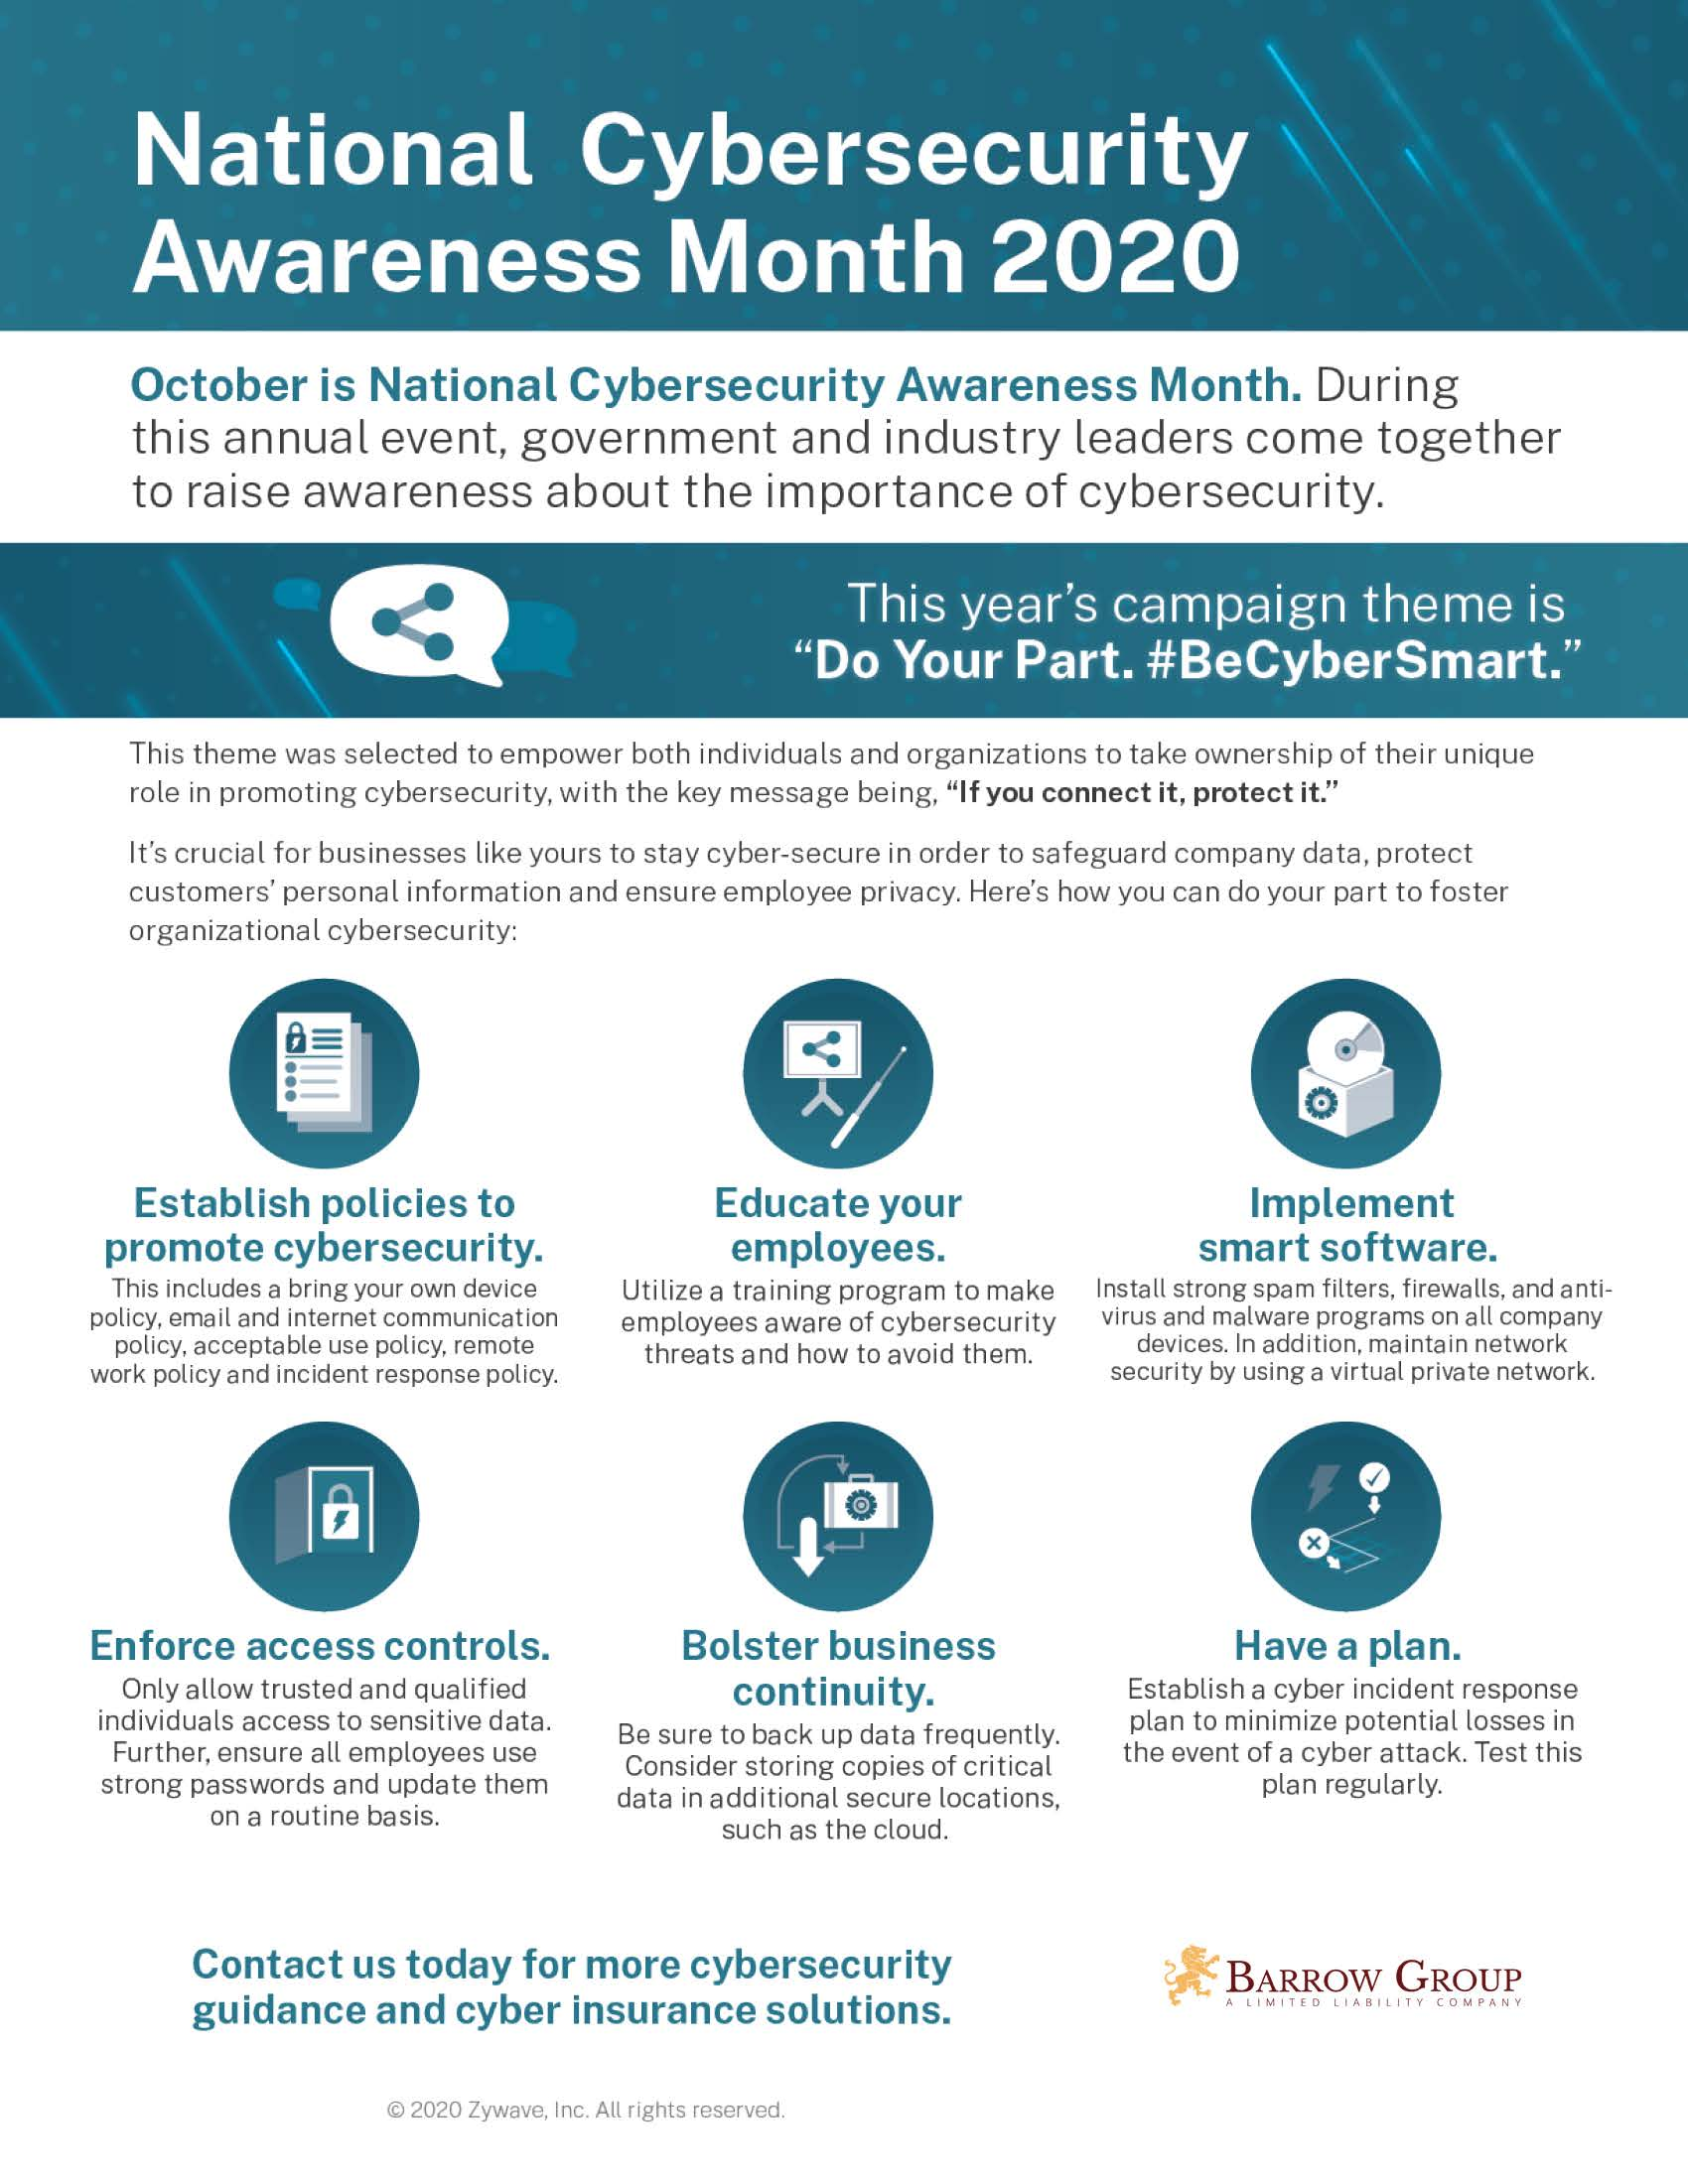 Cybersecurity Awareness Month 2020 Infographic